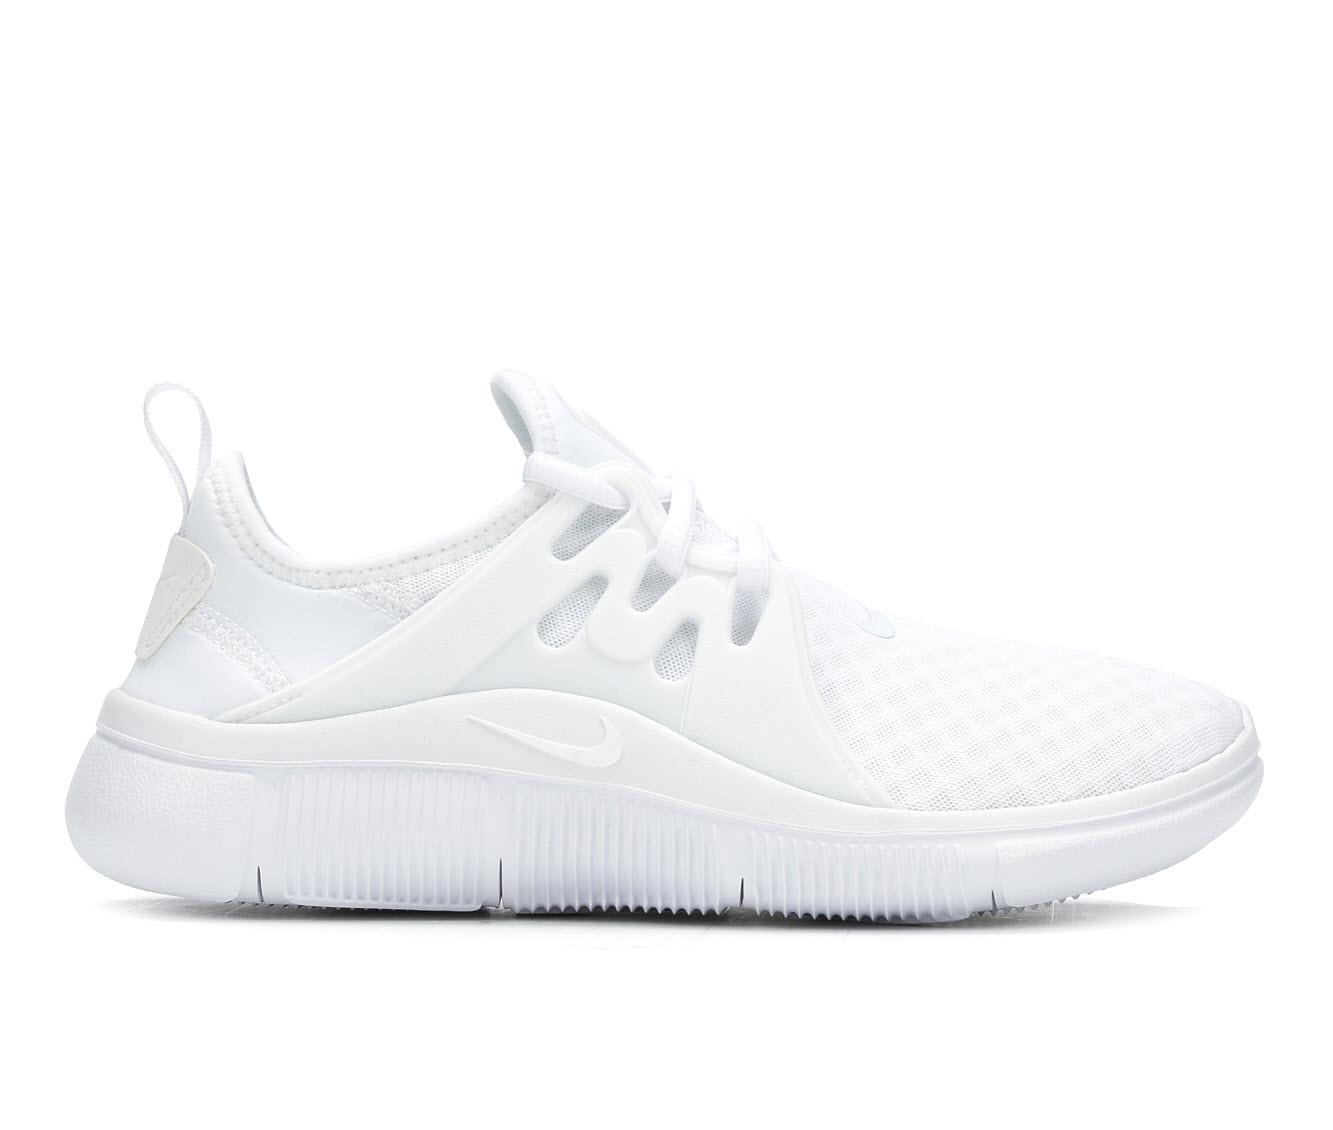 Nike Acalme Women's Athletic Shoe (White)